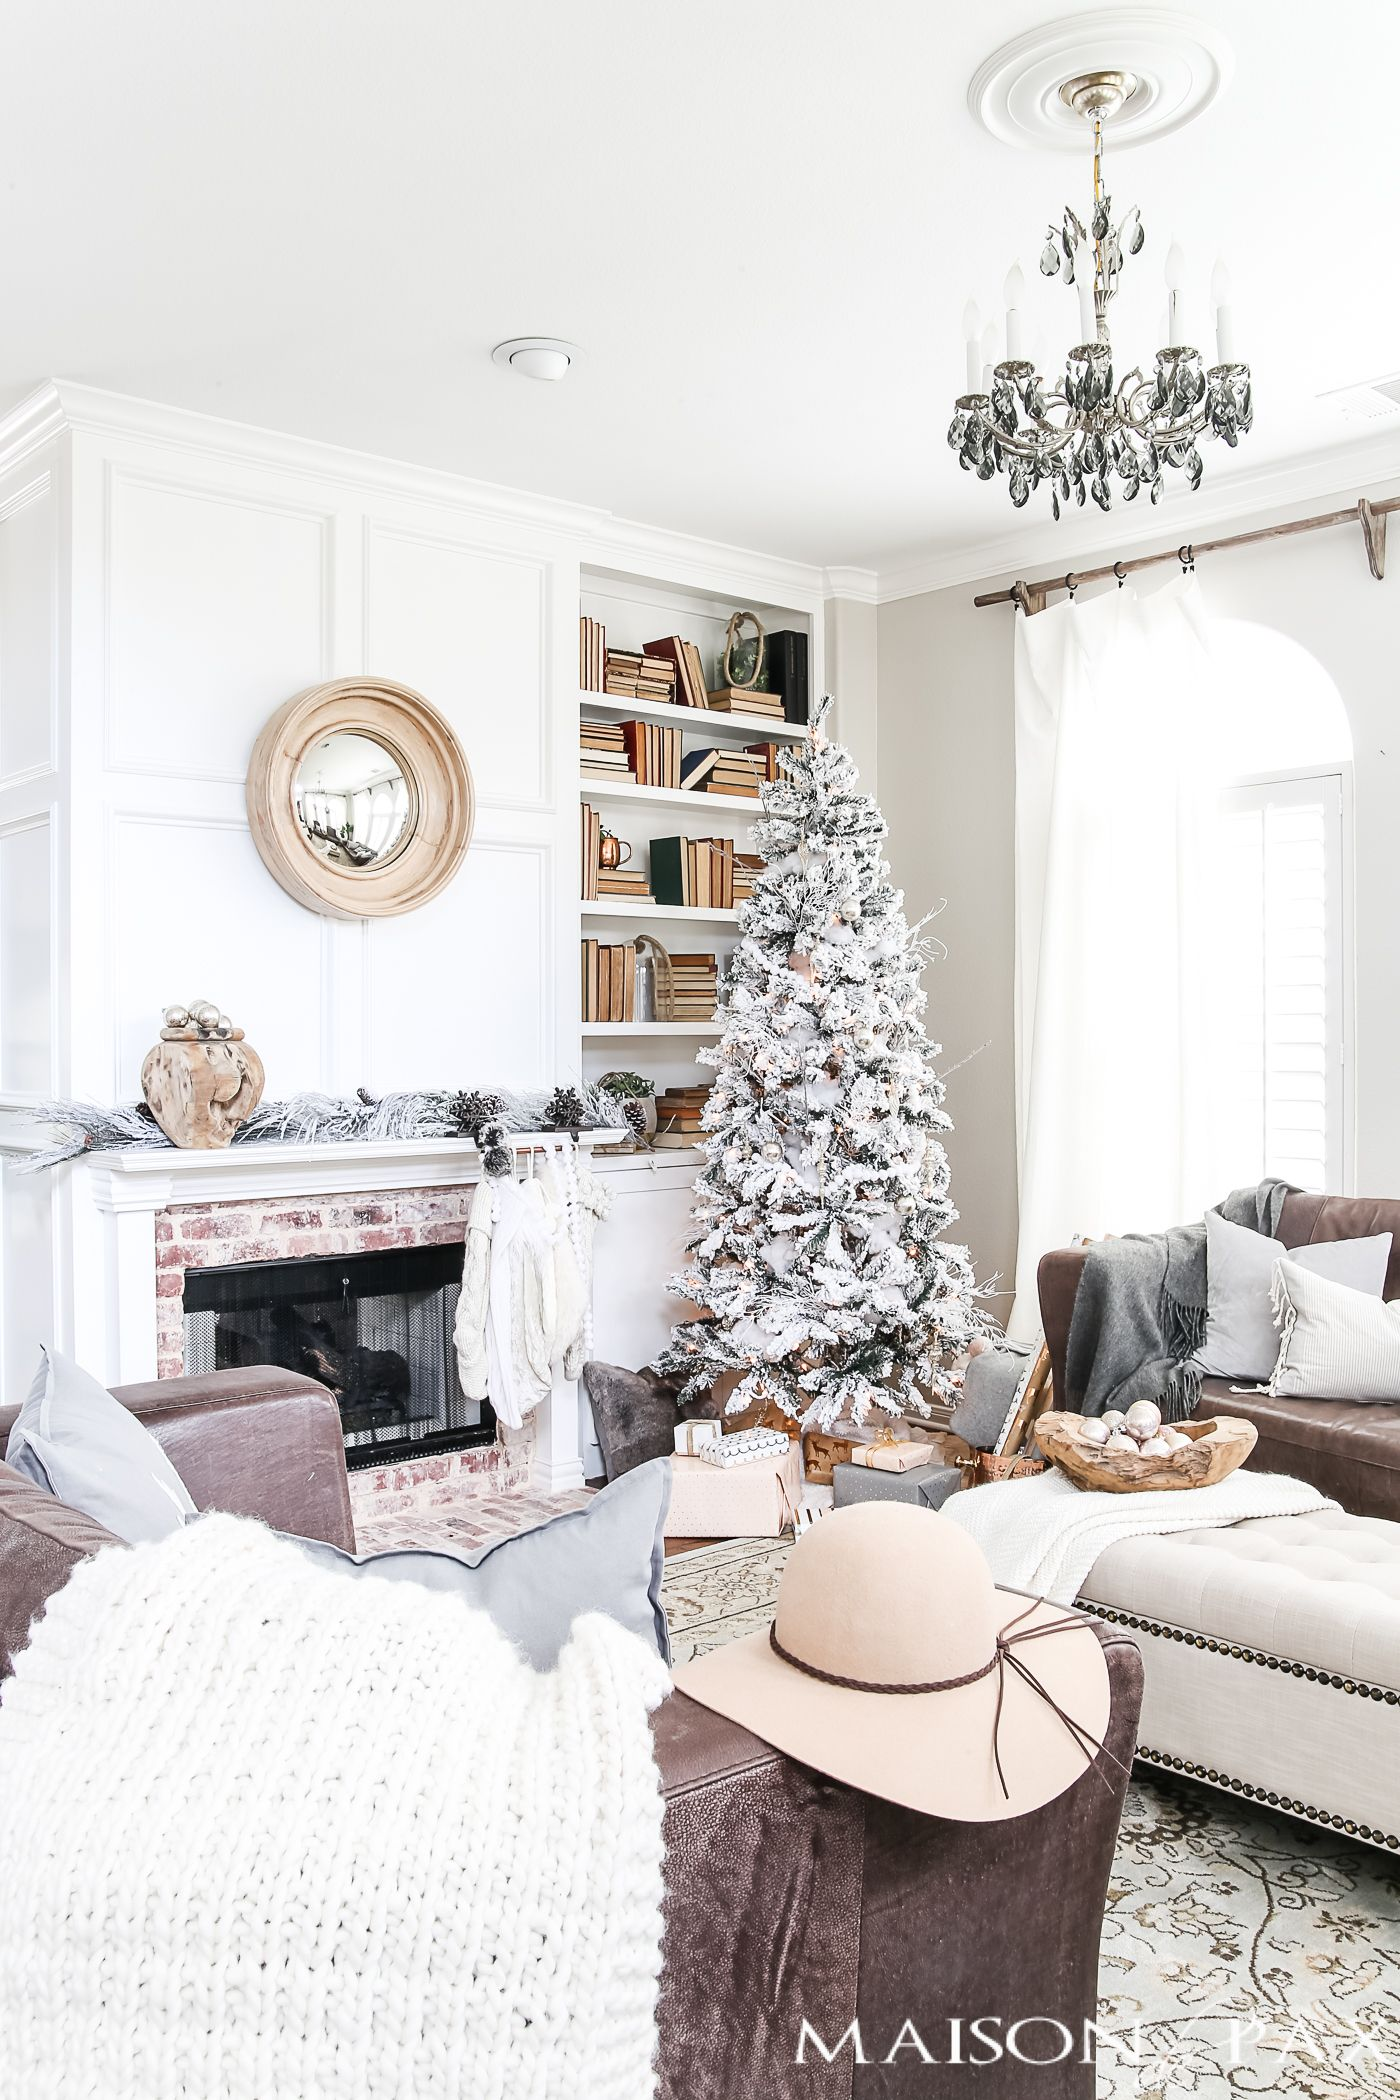 Tips for Simple, Elegant Holiday Decor | Christmas decor ...